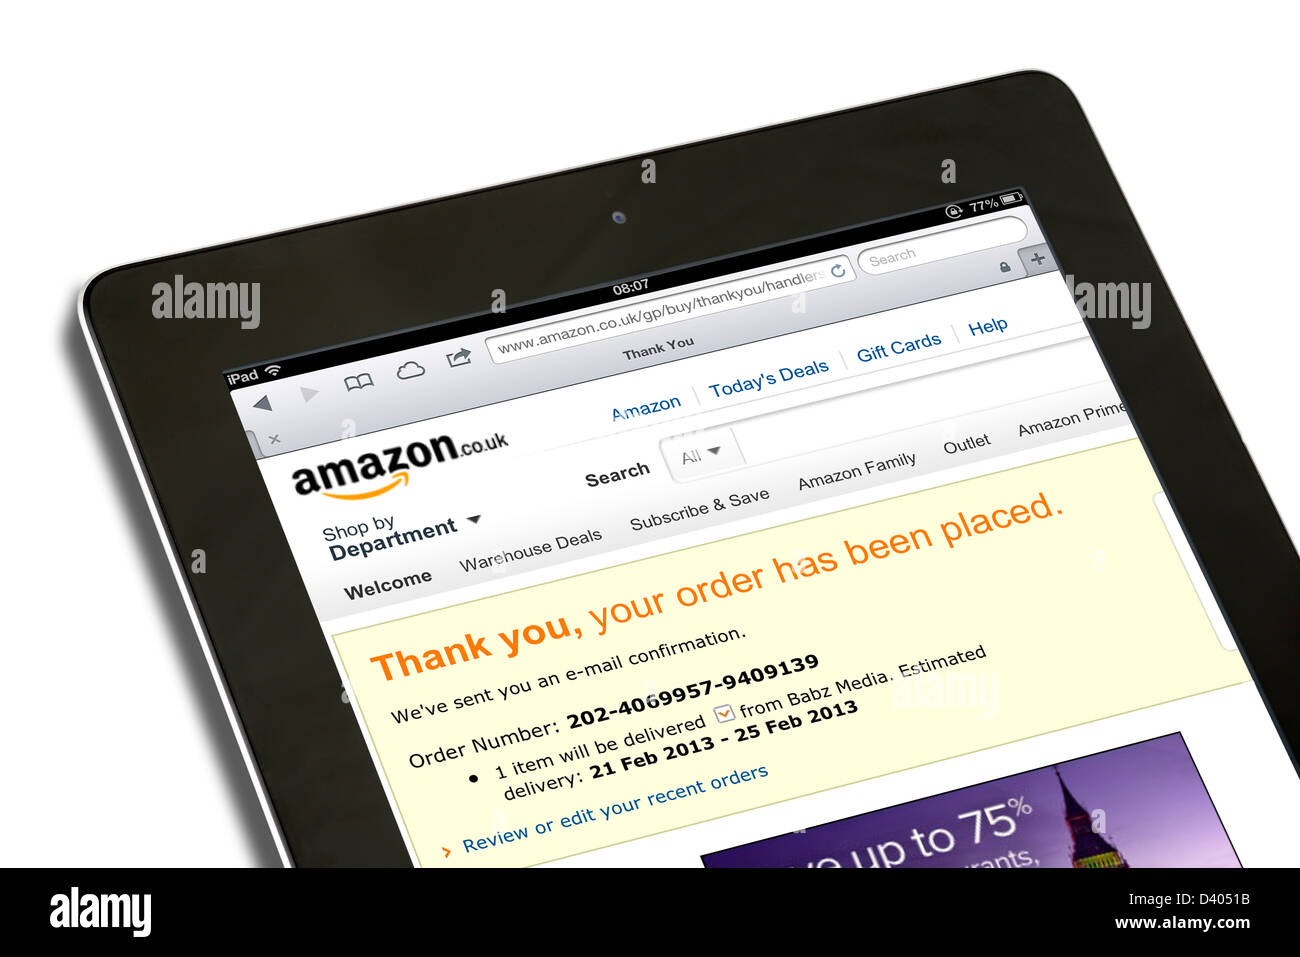 Order confirmation for online shopping on the amazon.co.uk website viewed on a 4th generation Apple iPad tablet - Stock Image